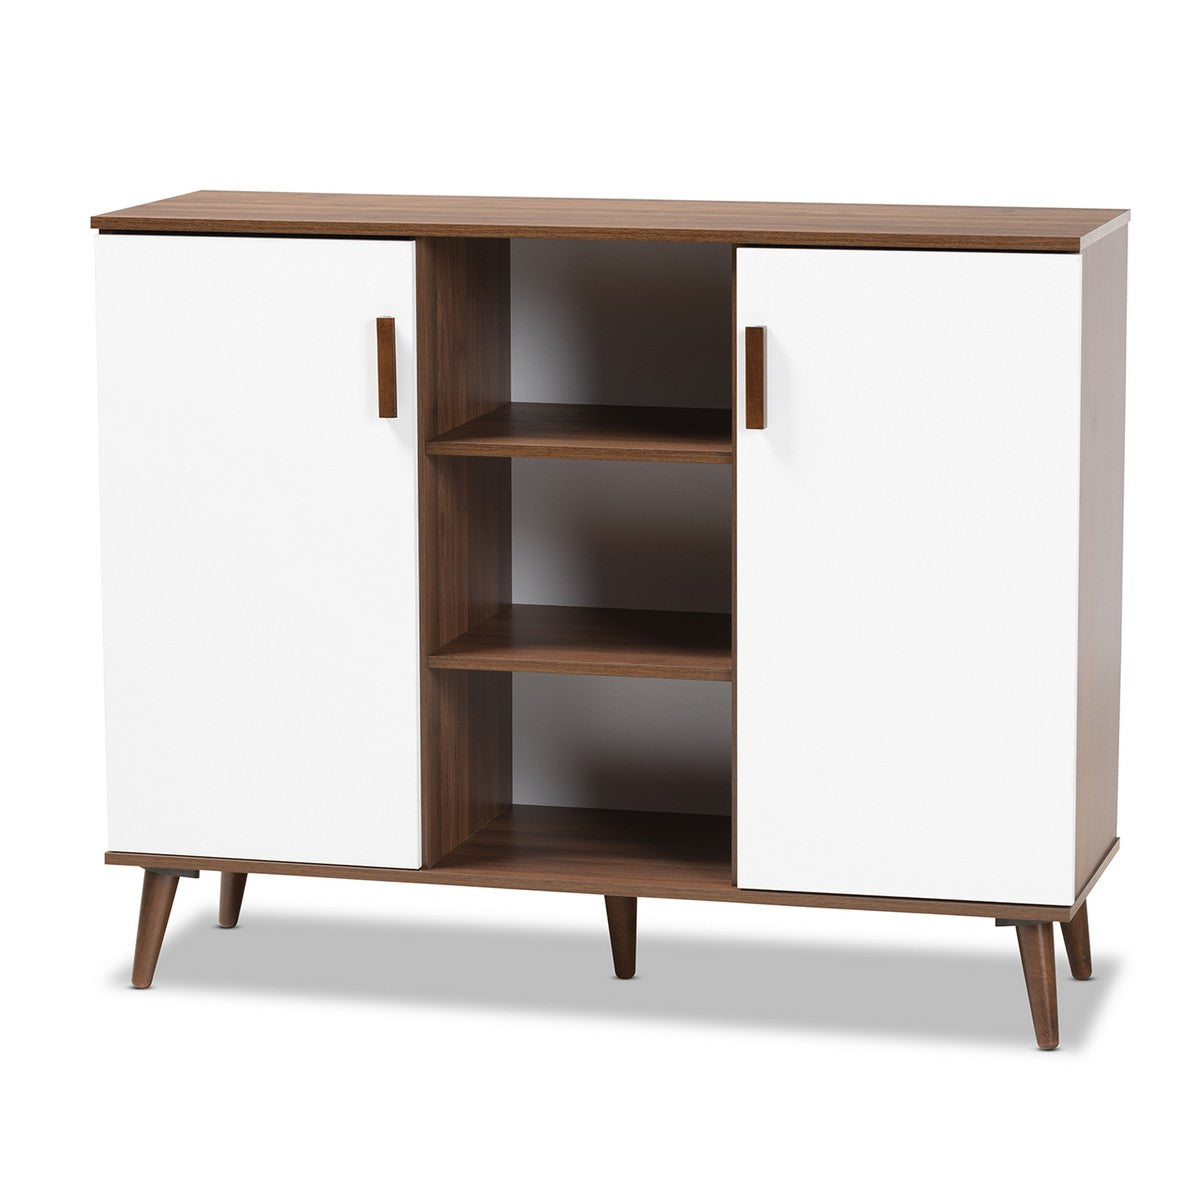 Baxton Studio Quinn Mid-Century Modern Two-Tone White and Walnut Finished 2-Door Wood Dining Room Sideboard Baxton Studio- Sideboards and Servers-Minimal And Modern - 1